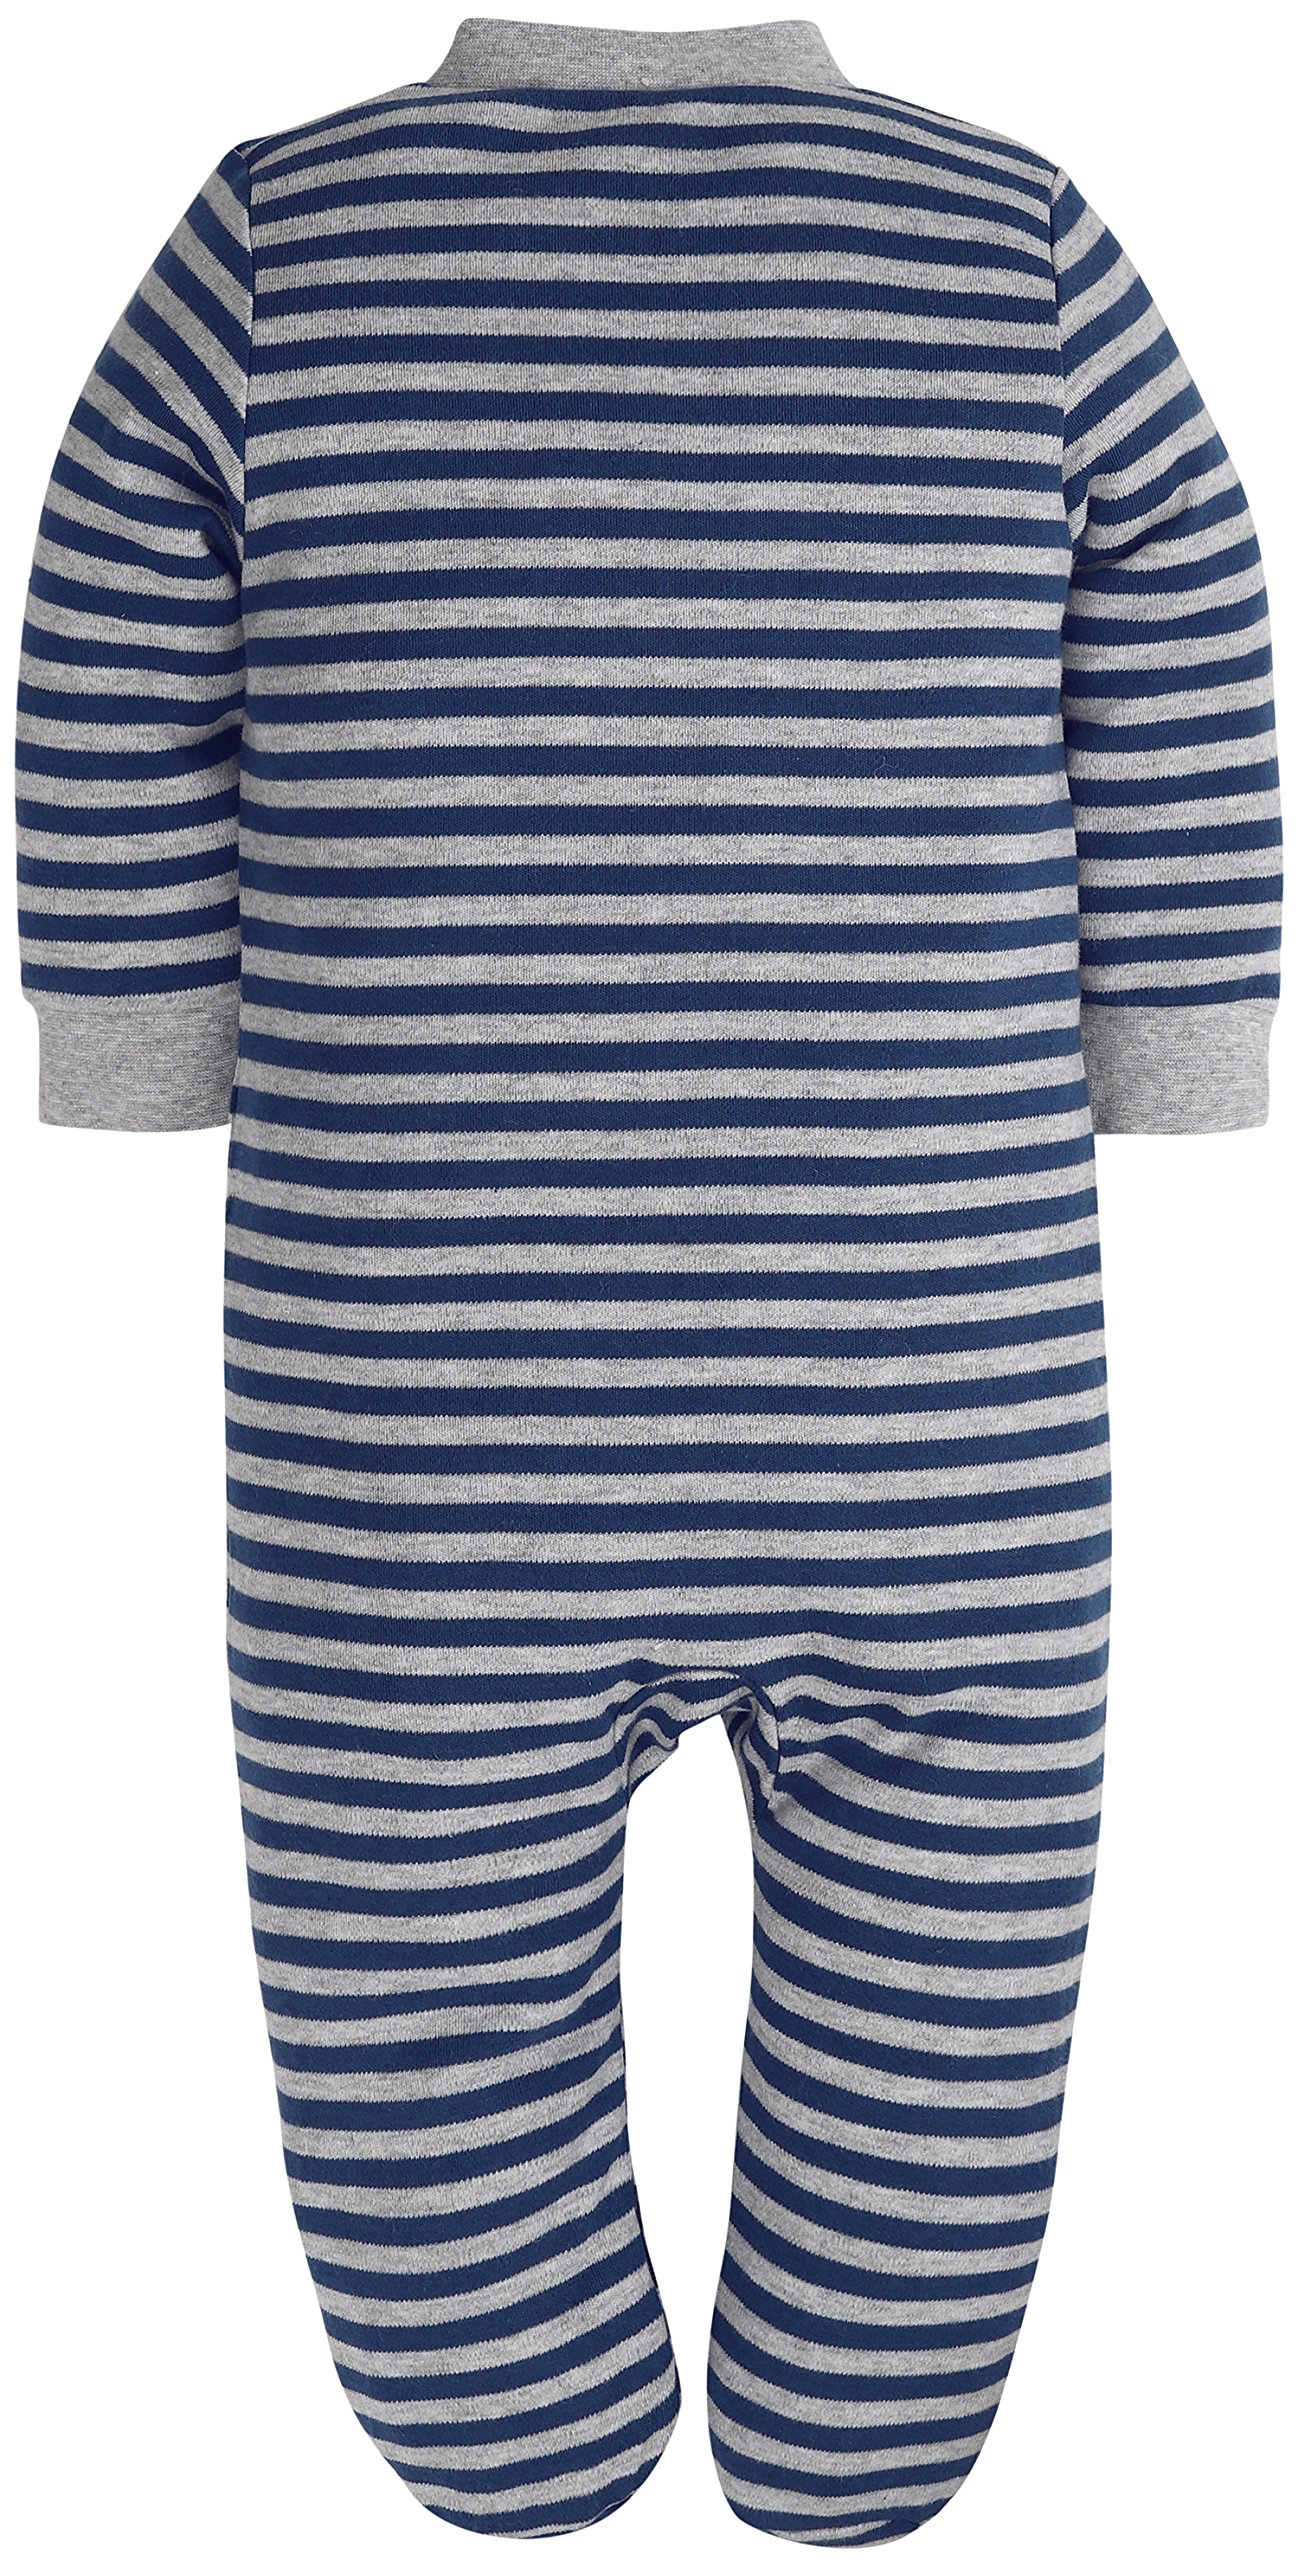 Baby Boys'2 Pack Footed Sleeper Yarn-Dyed Striped Baby Pajamas Set (Blue Dog/Grey Car, 18-24 Months) by SHENGWEN (Image #8)